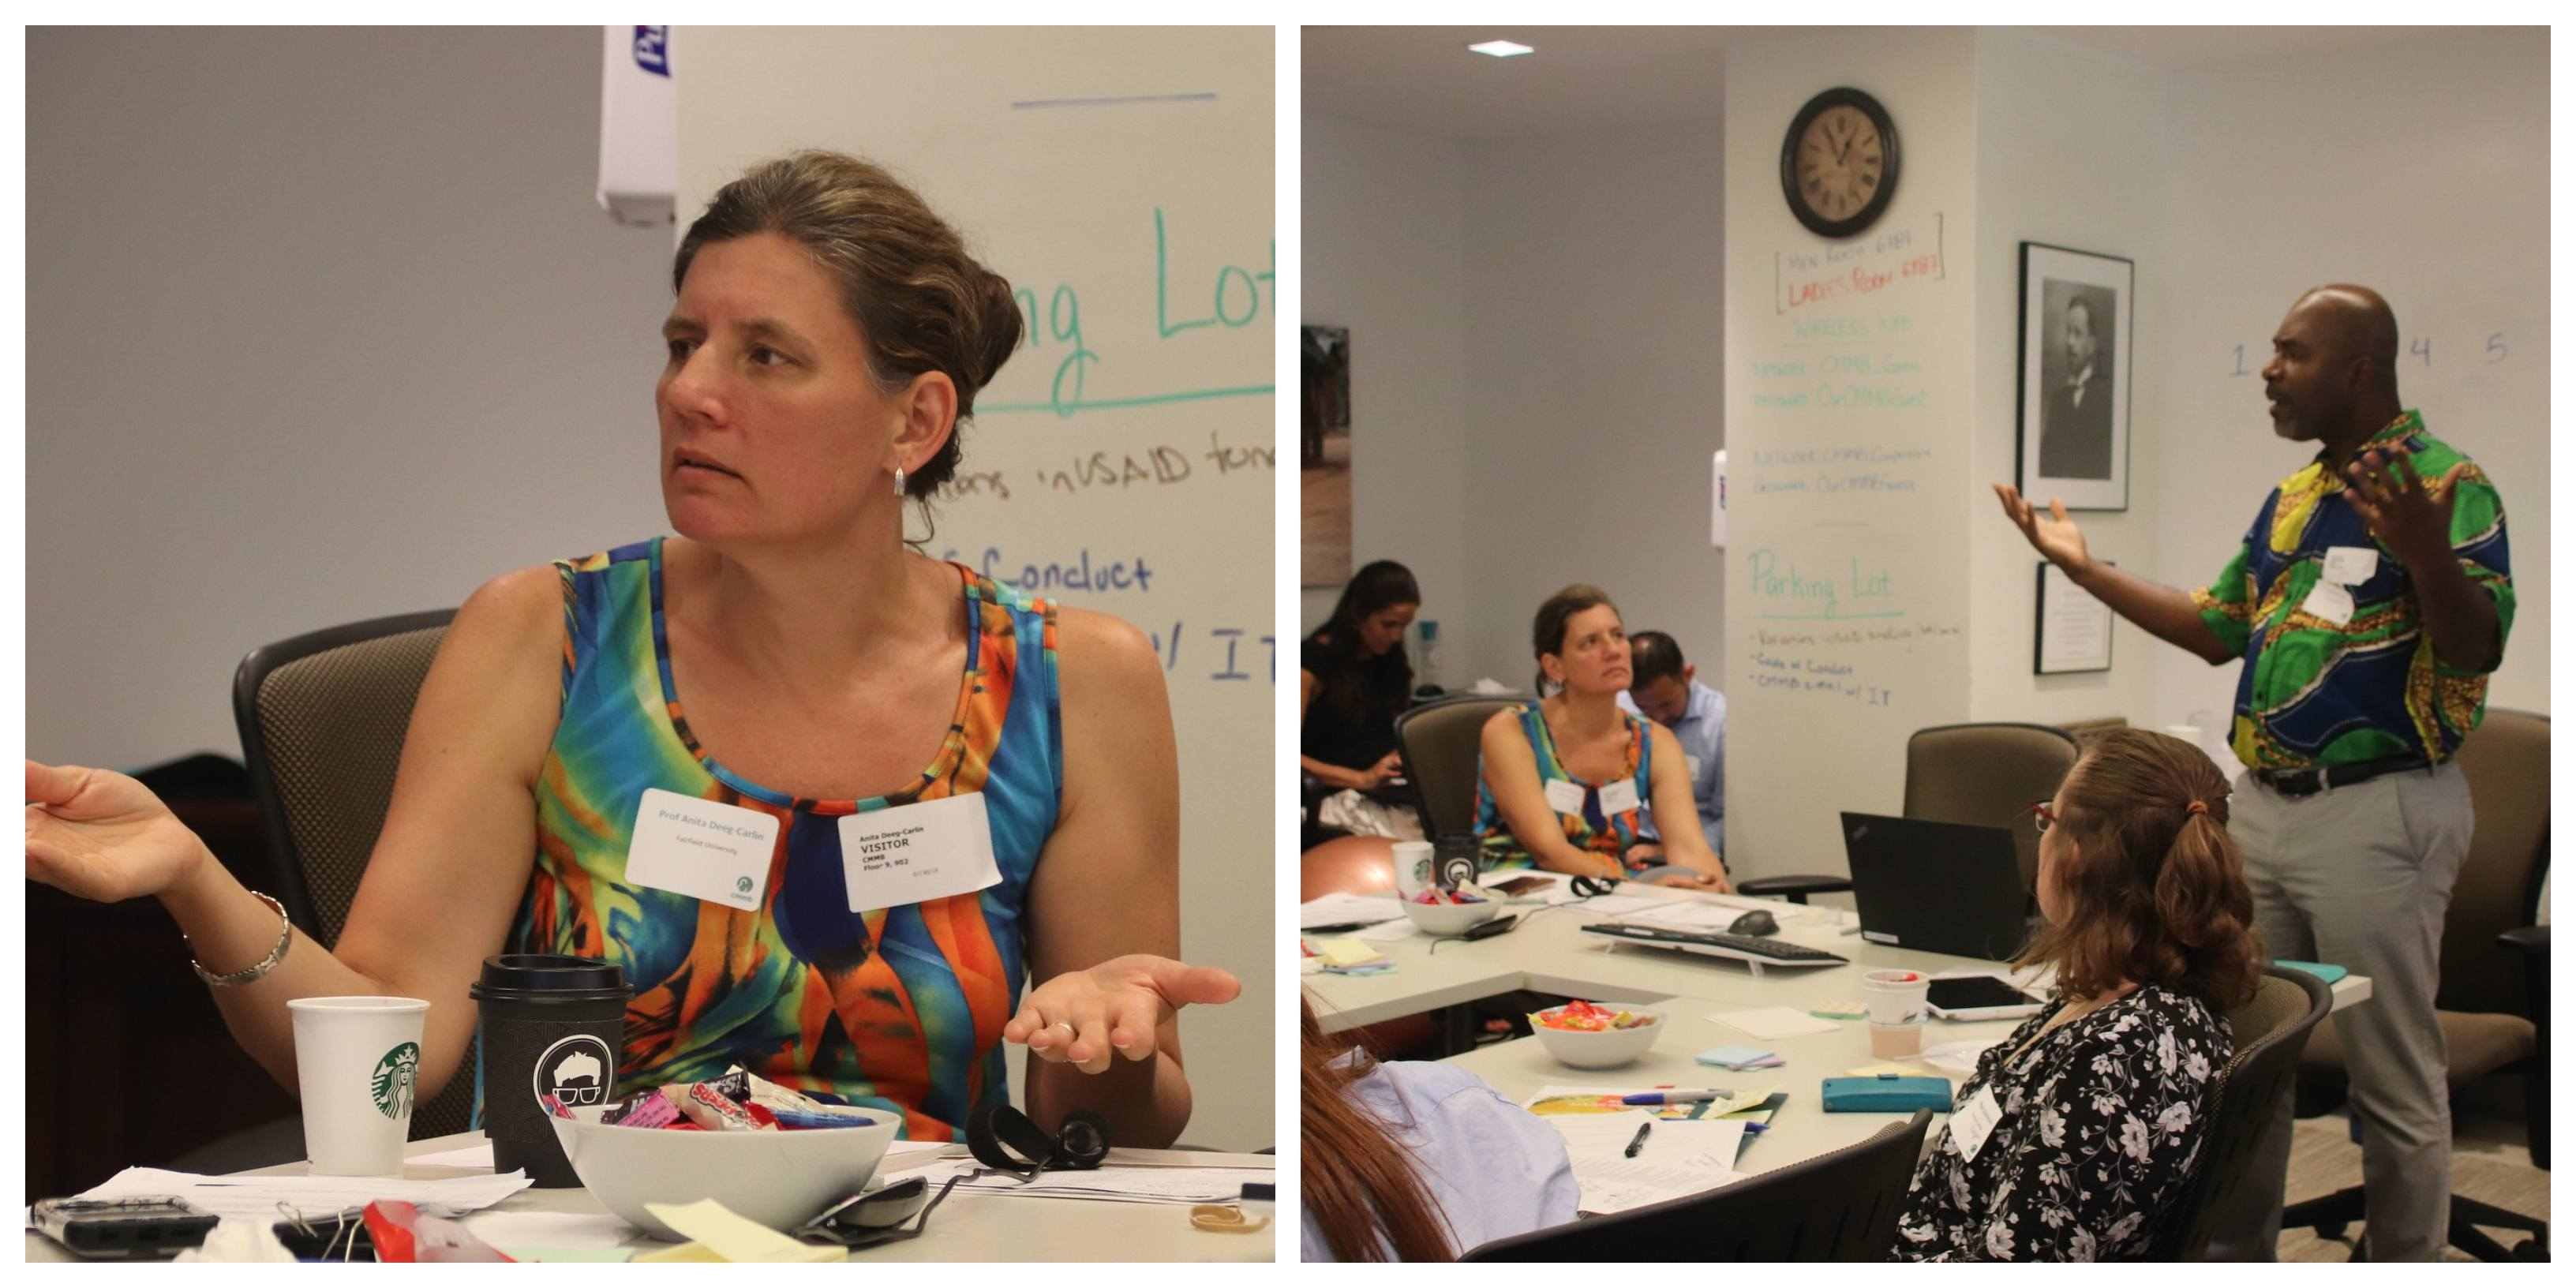 Collage featuring Alfred Babo and Proffessor Anita Deeg Carlin presenting at the volunteer orientation